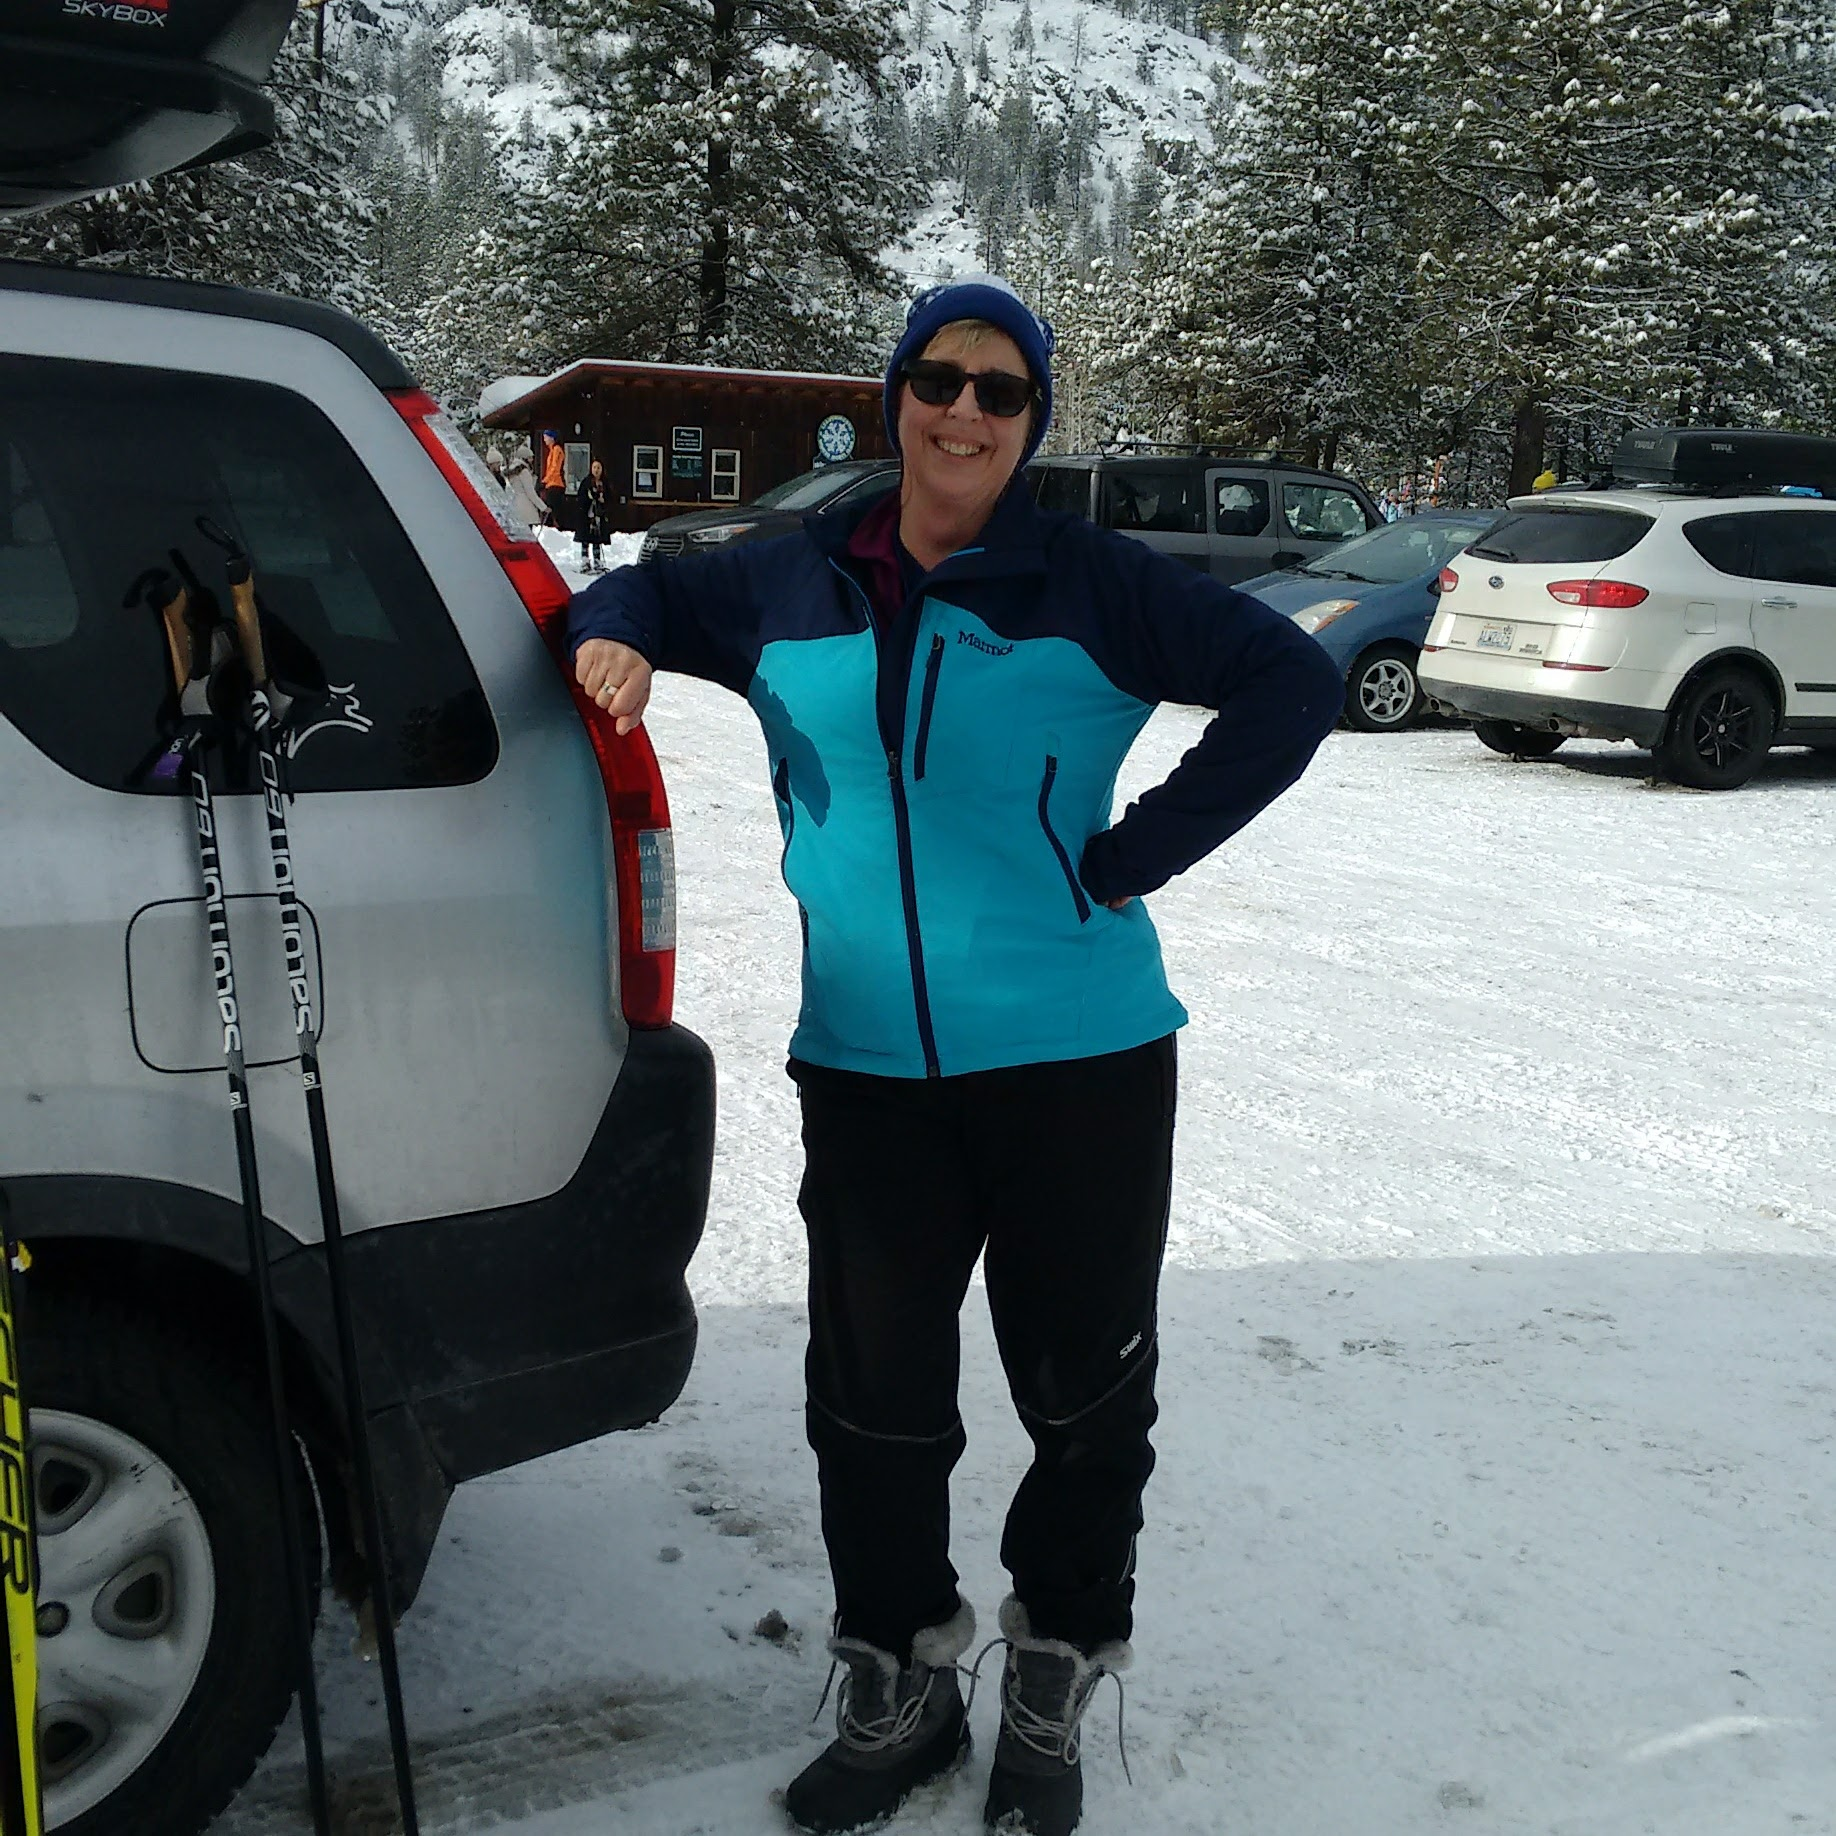 a smiling woman wearing a blue and teal jacket and matching hat and sunglasses is leaning on a silver car in a snowy parking lot